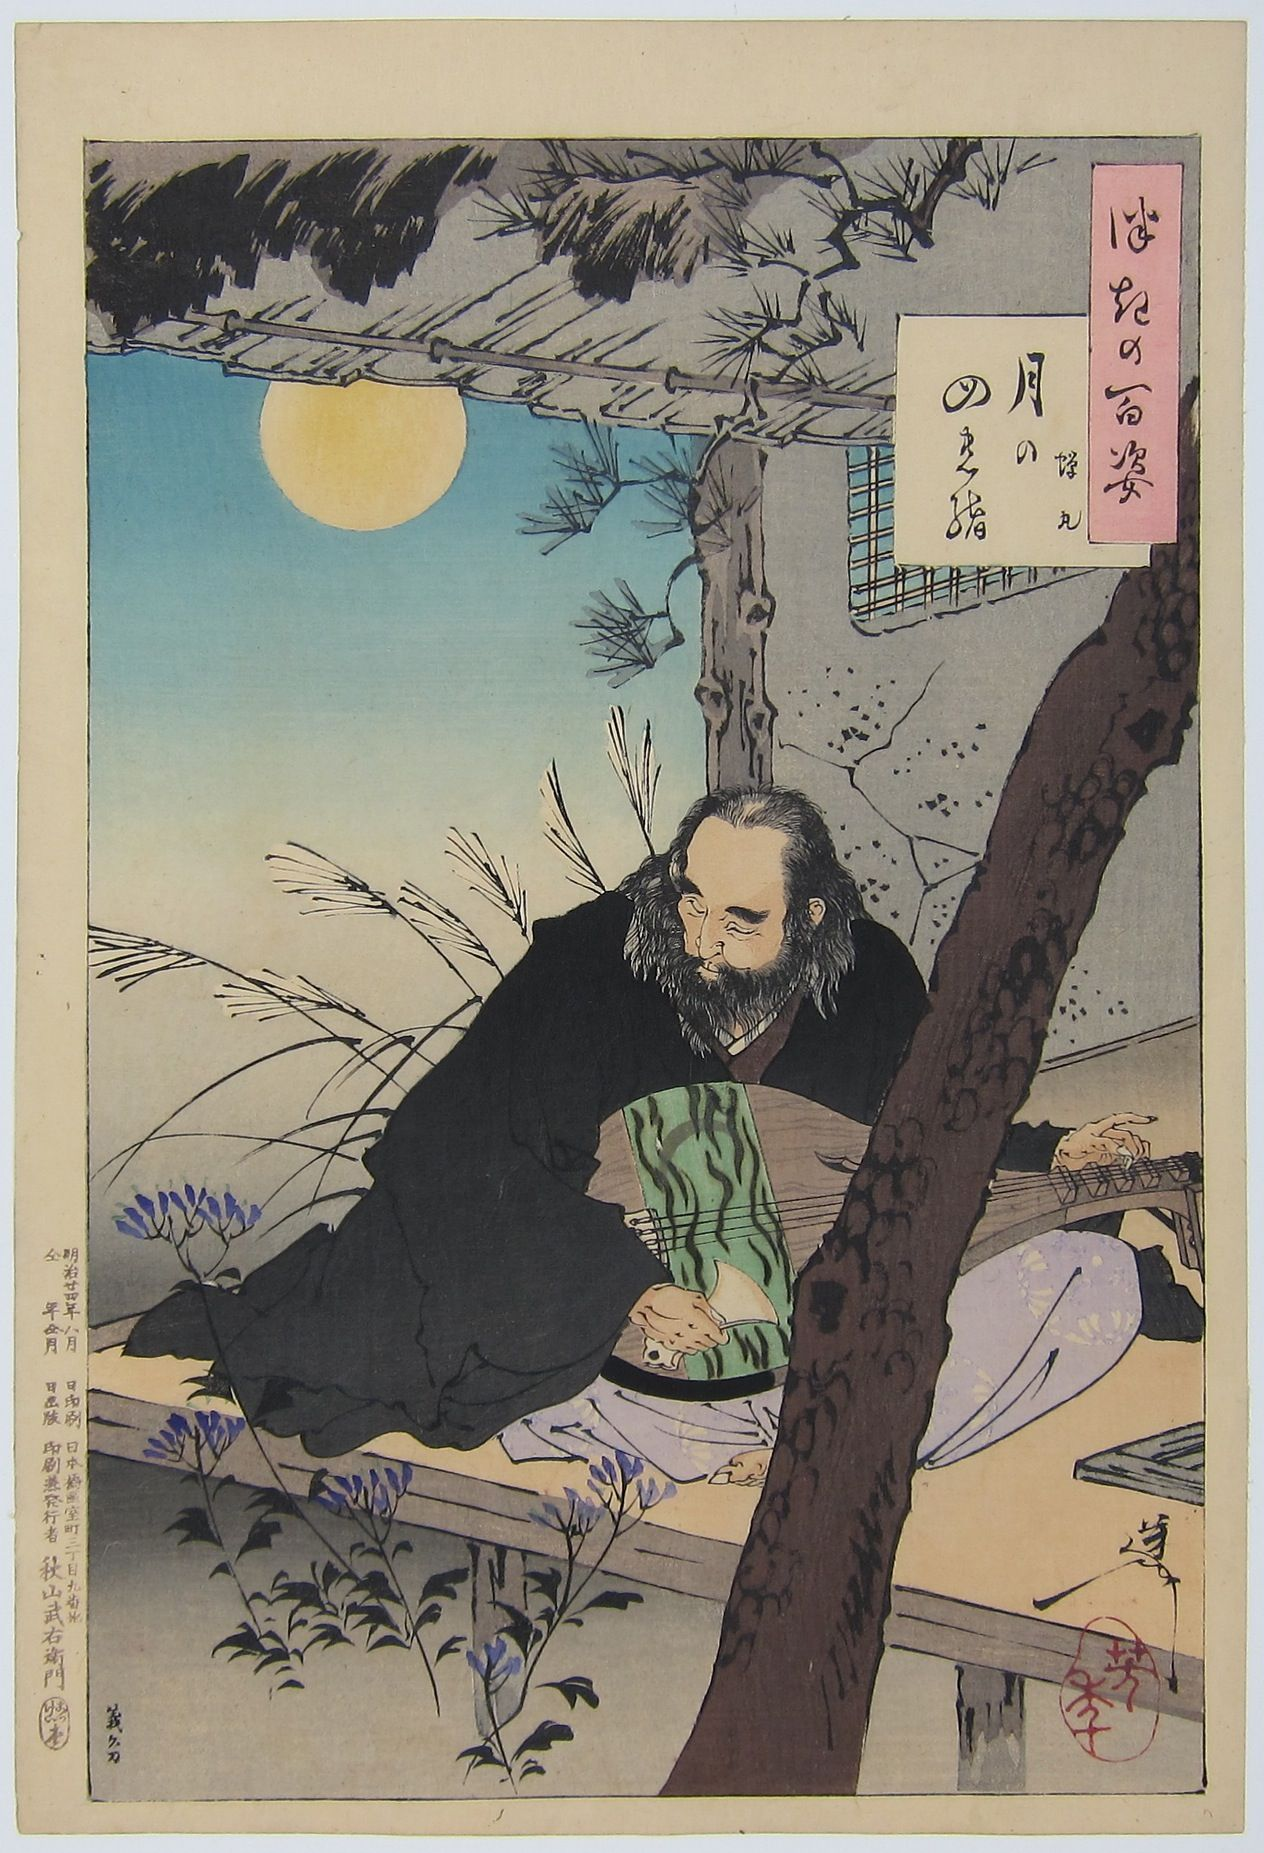 The Moon's Four Strings. Semimaru. 8/1891.